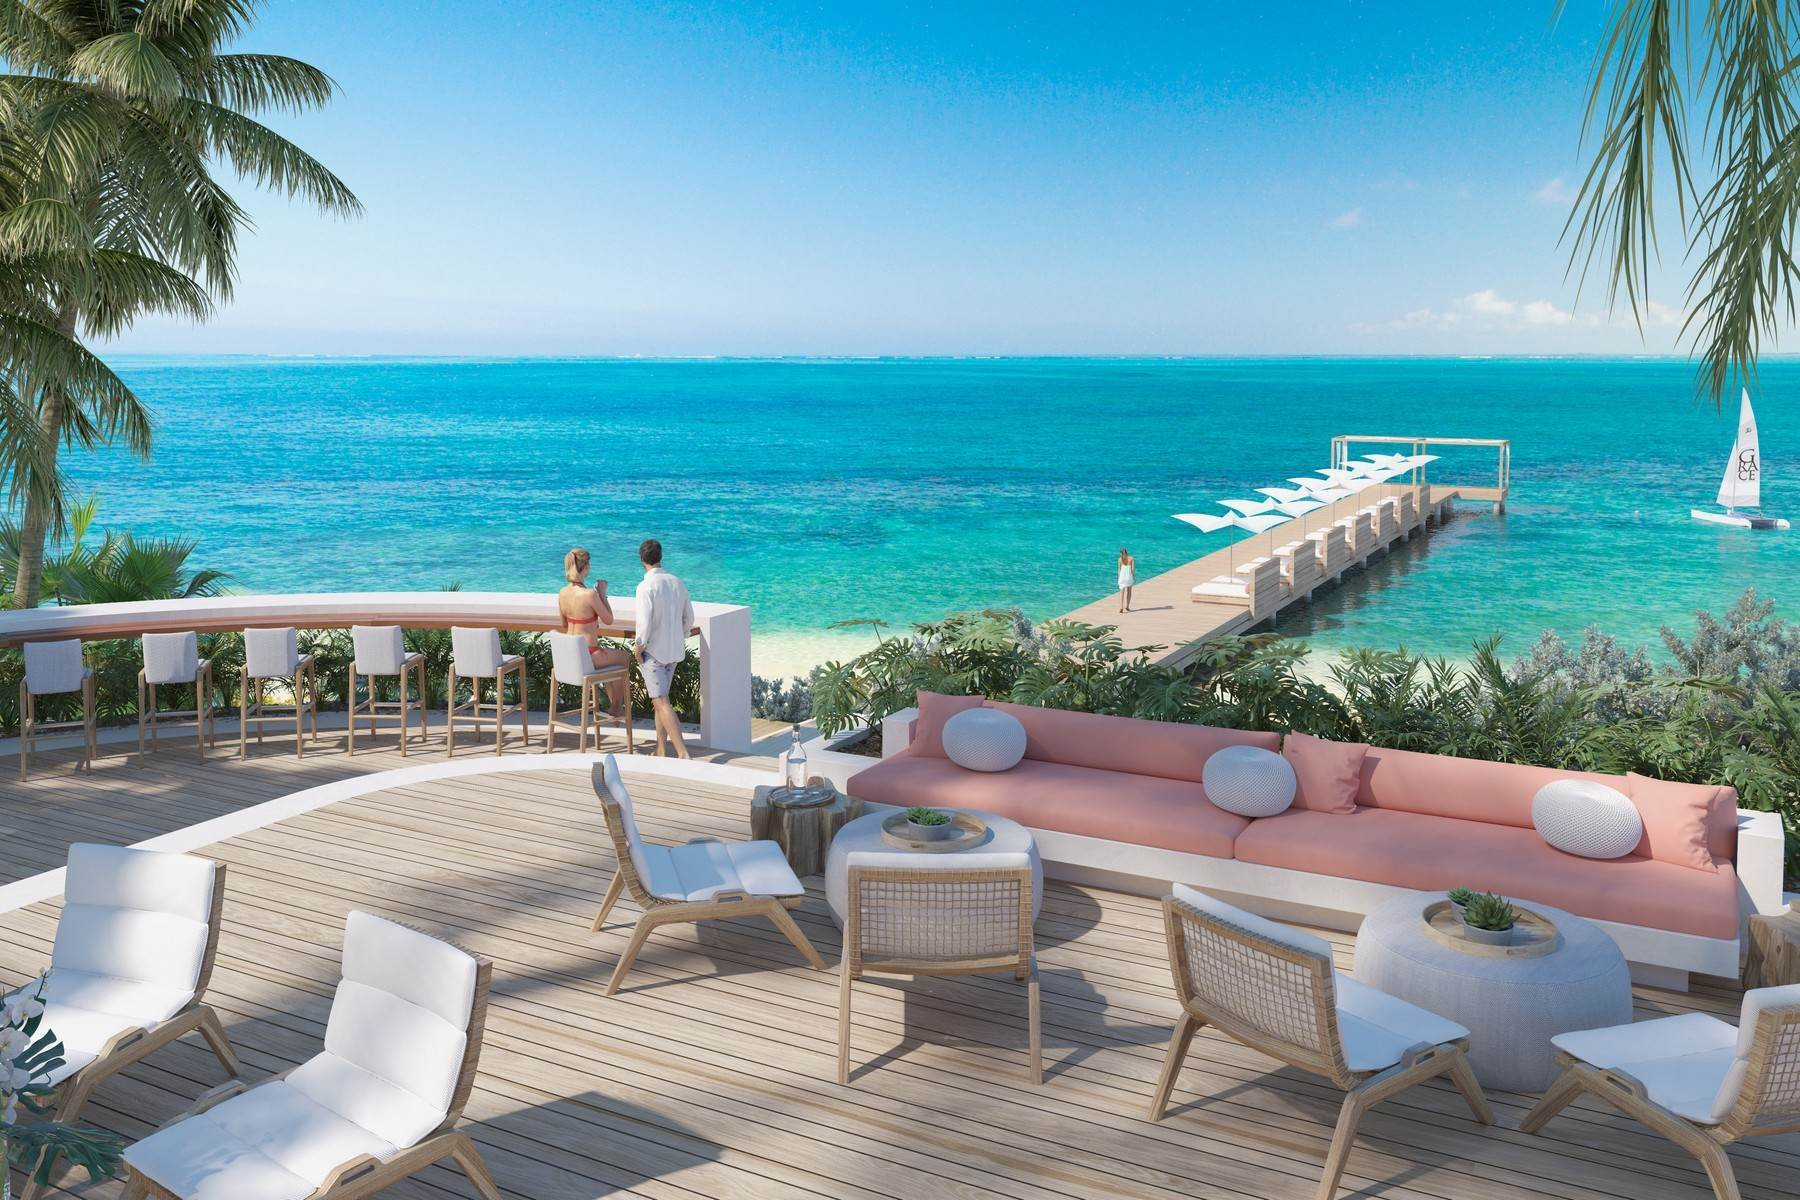 4. Condominiums for Sale at Rock House Studio Rock House Resort, International Drive Blue Mountain, Providenciales TKCA 1ZZ Turks And Caicos Islands